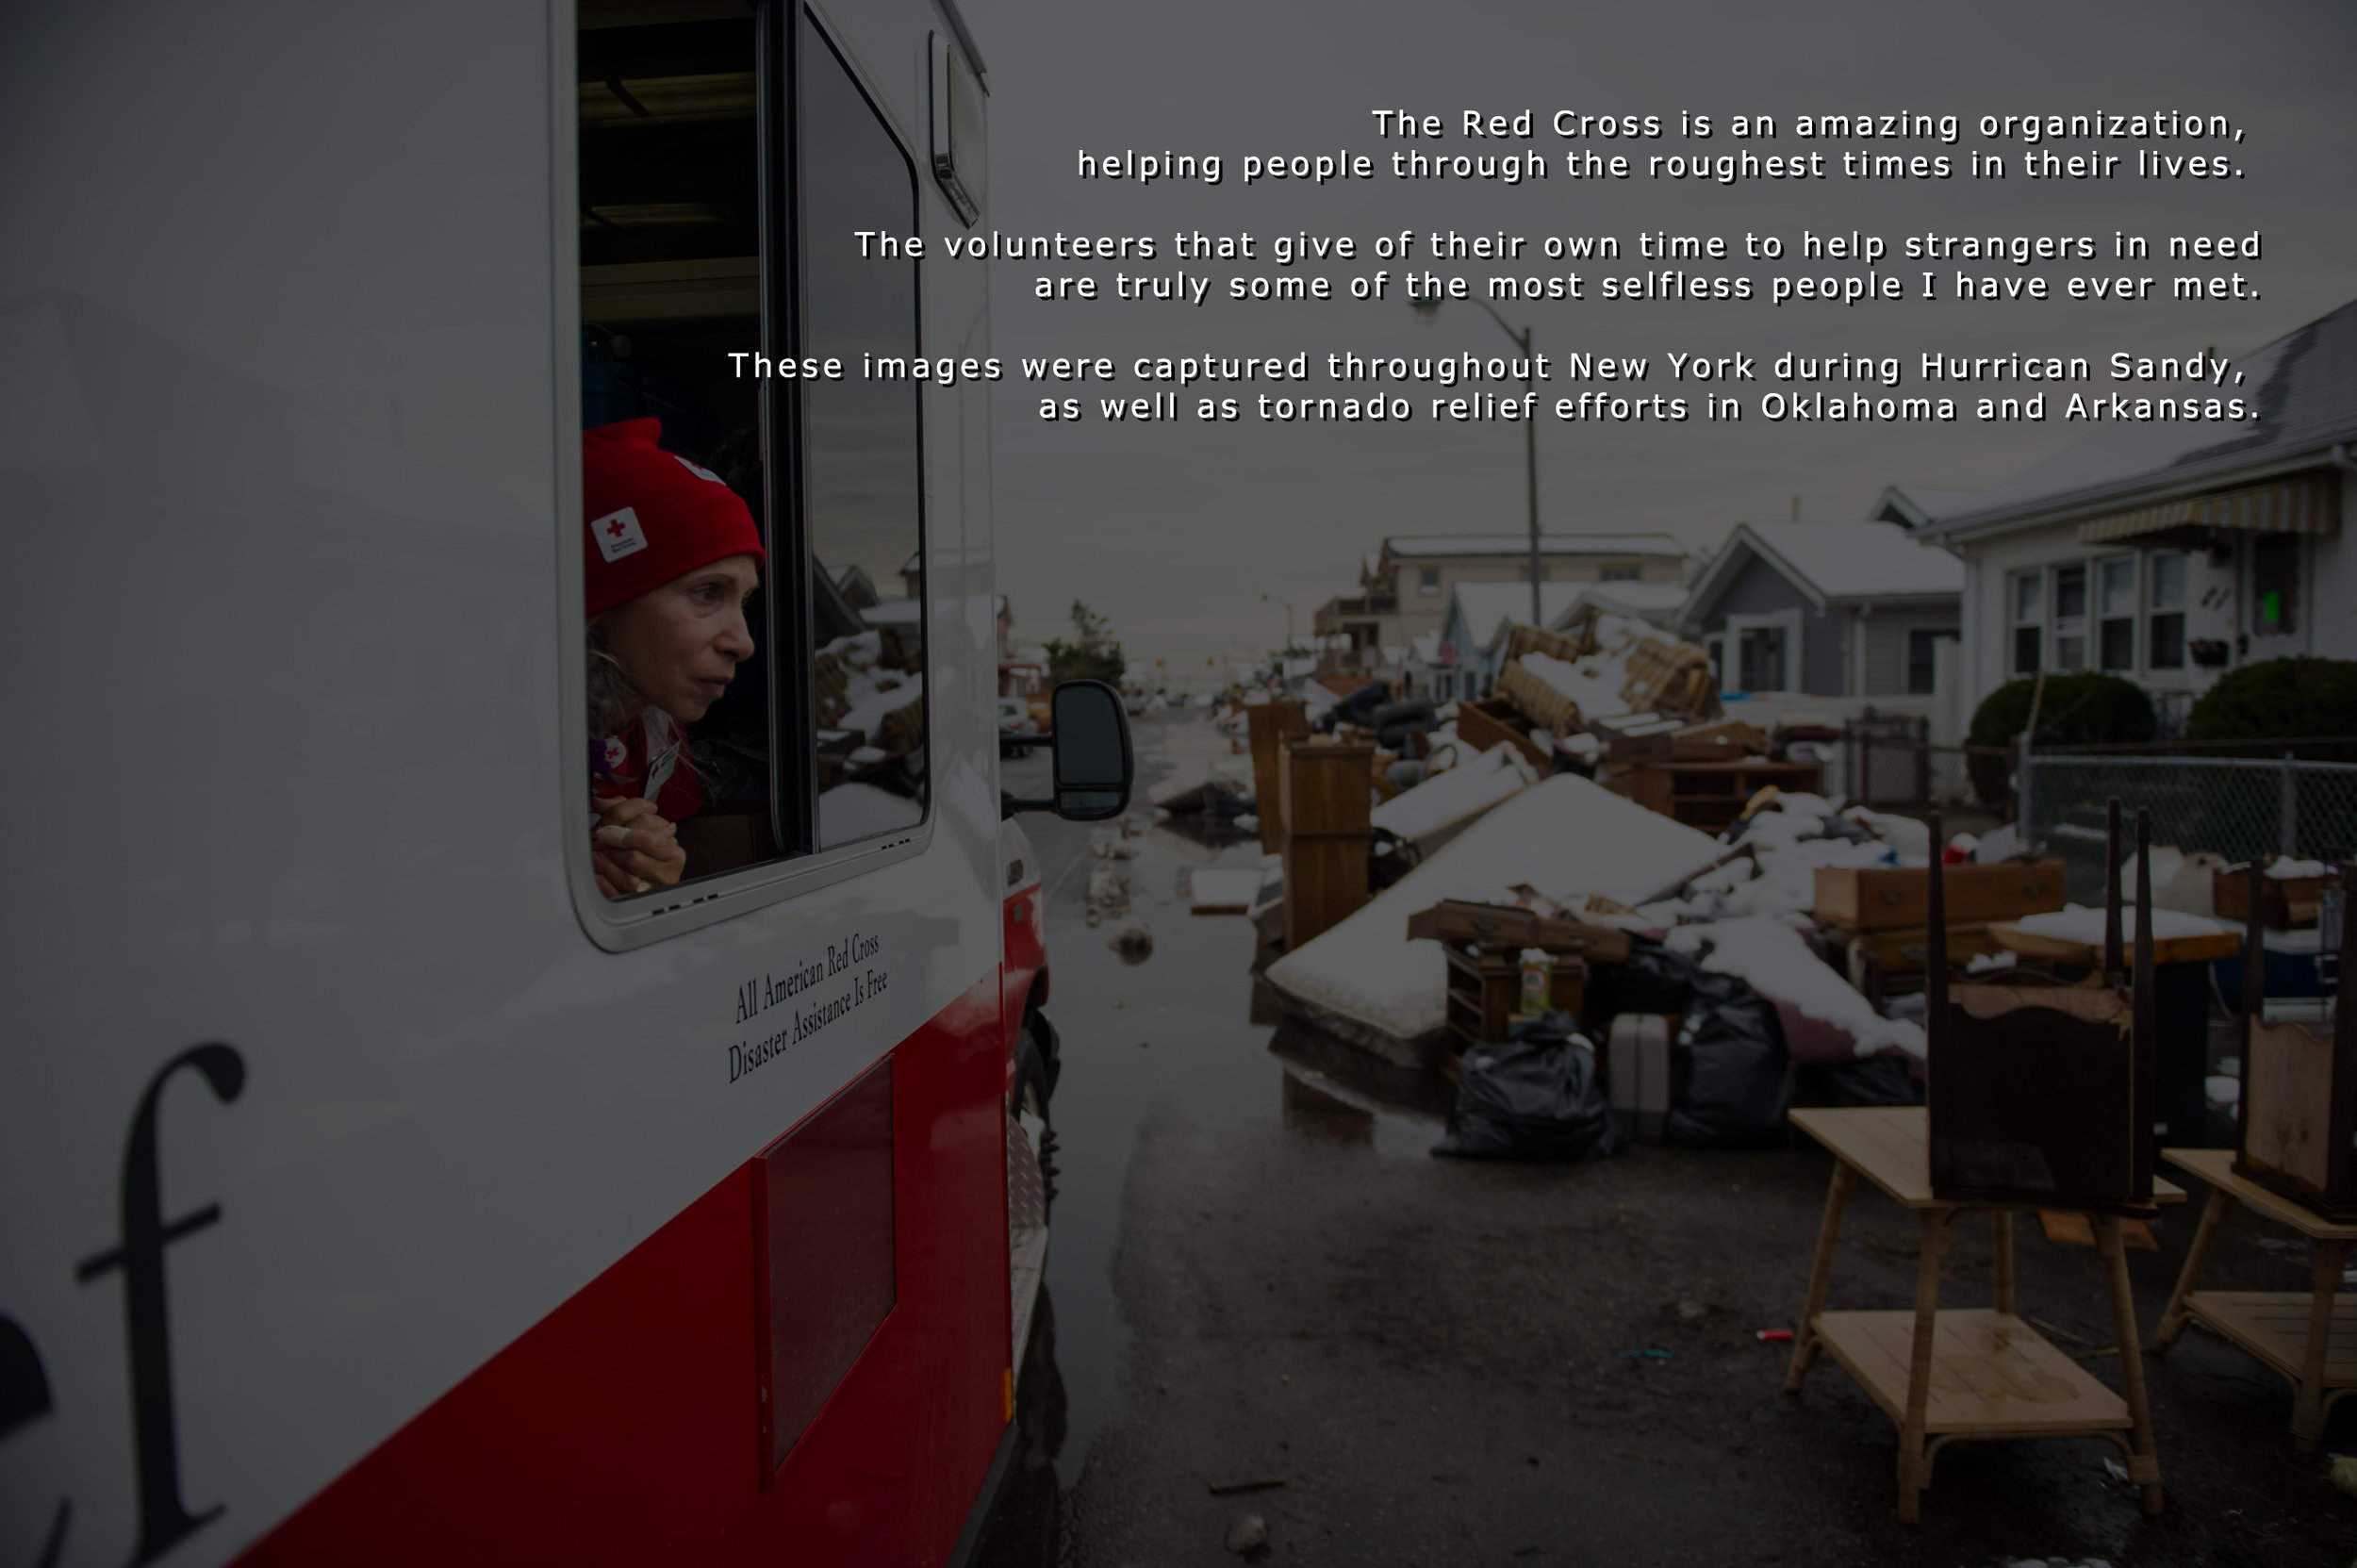 RedCross_stories.jpg